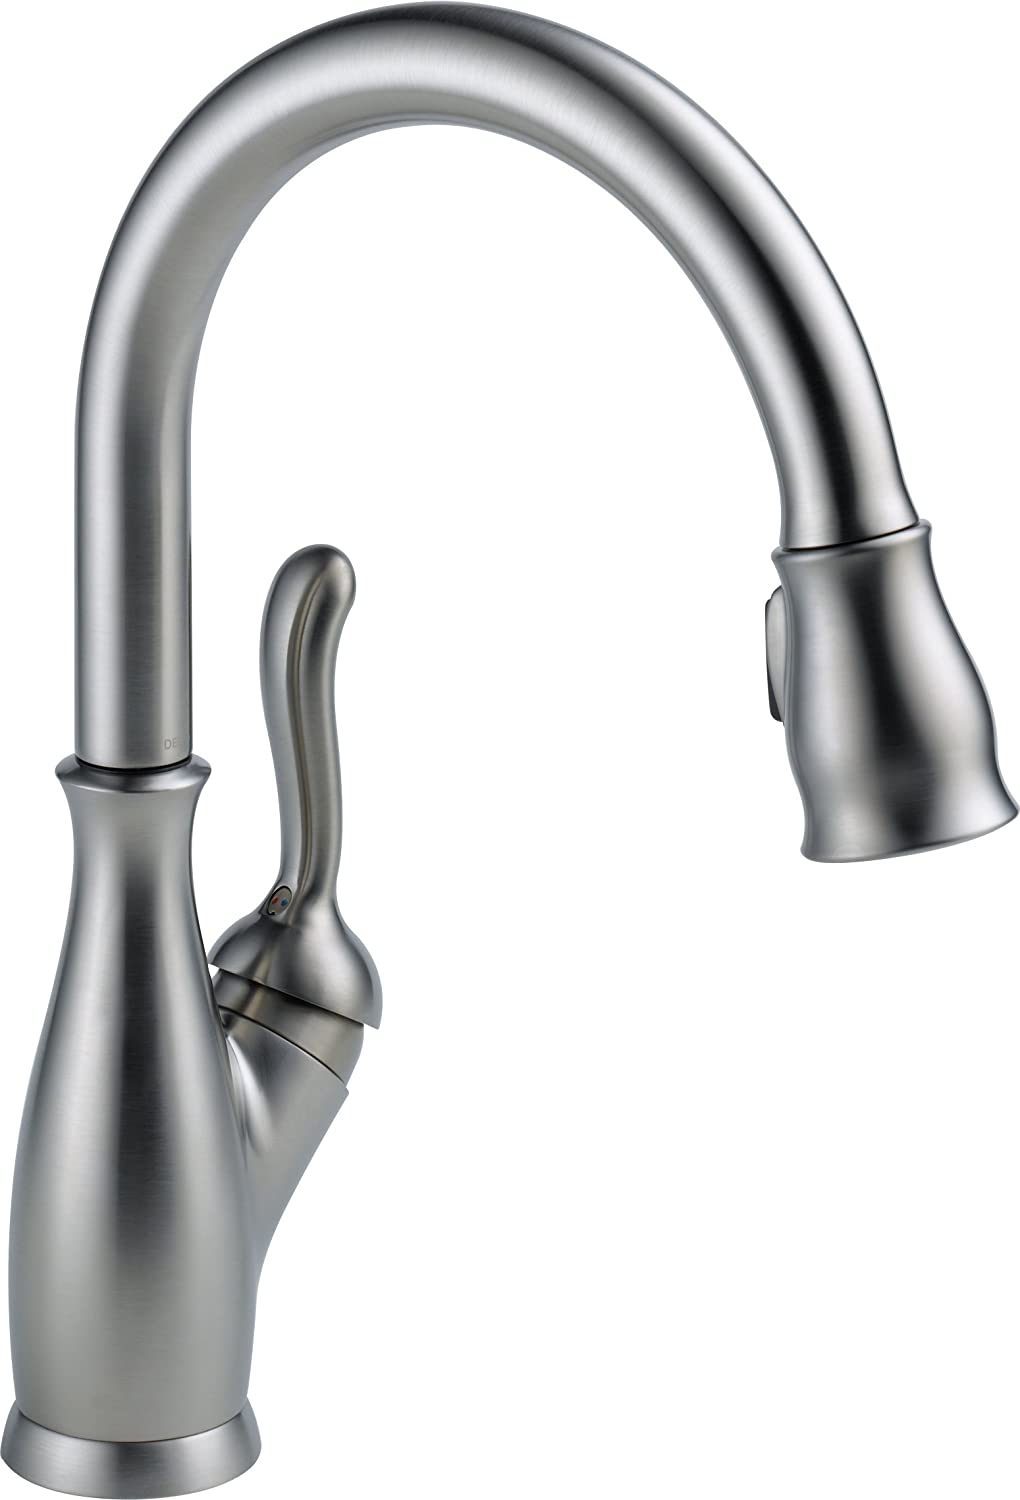 kitchen faucet with matching bar faucet faucets kitchen Delta Faucet AR DST Leland Single Handle Pull Down Kitchen Faucet